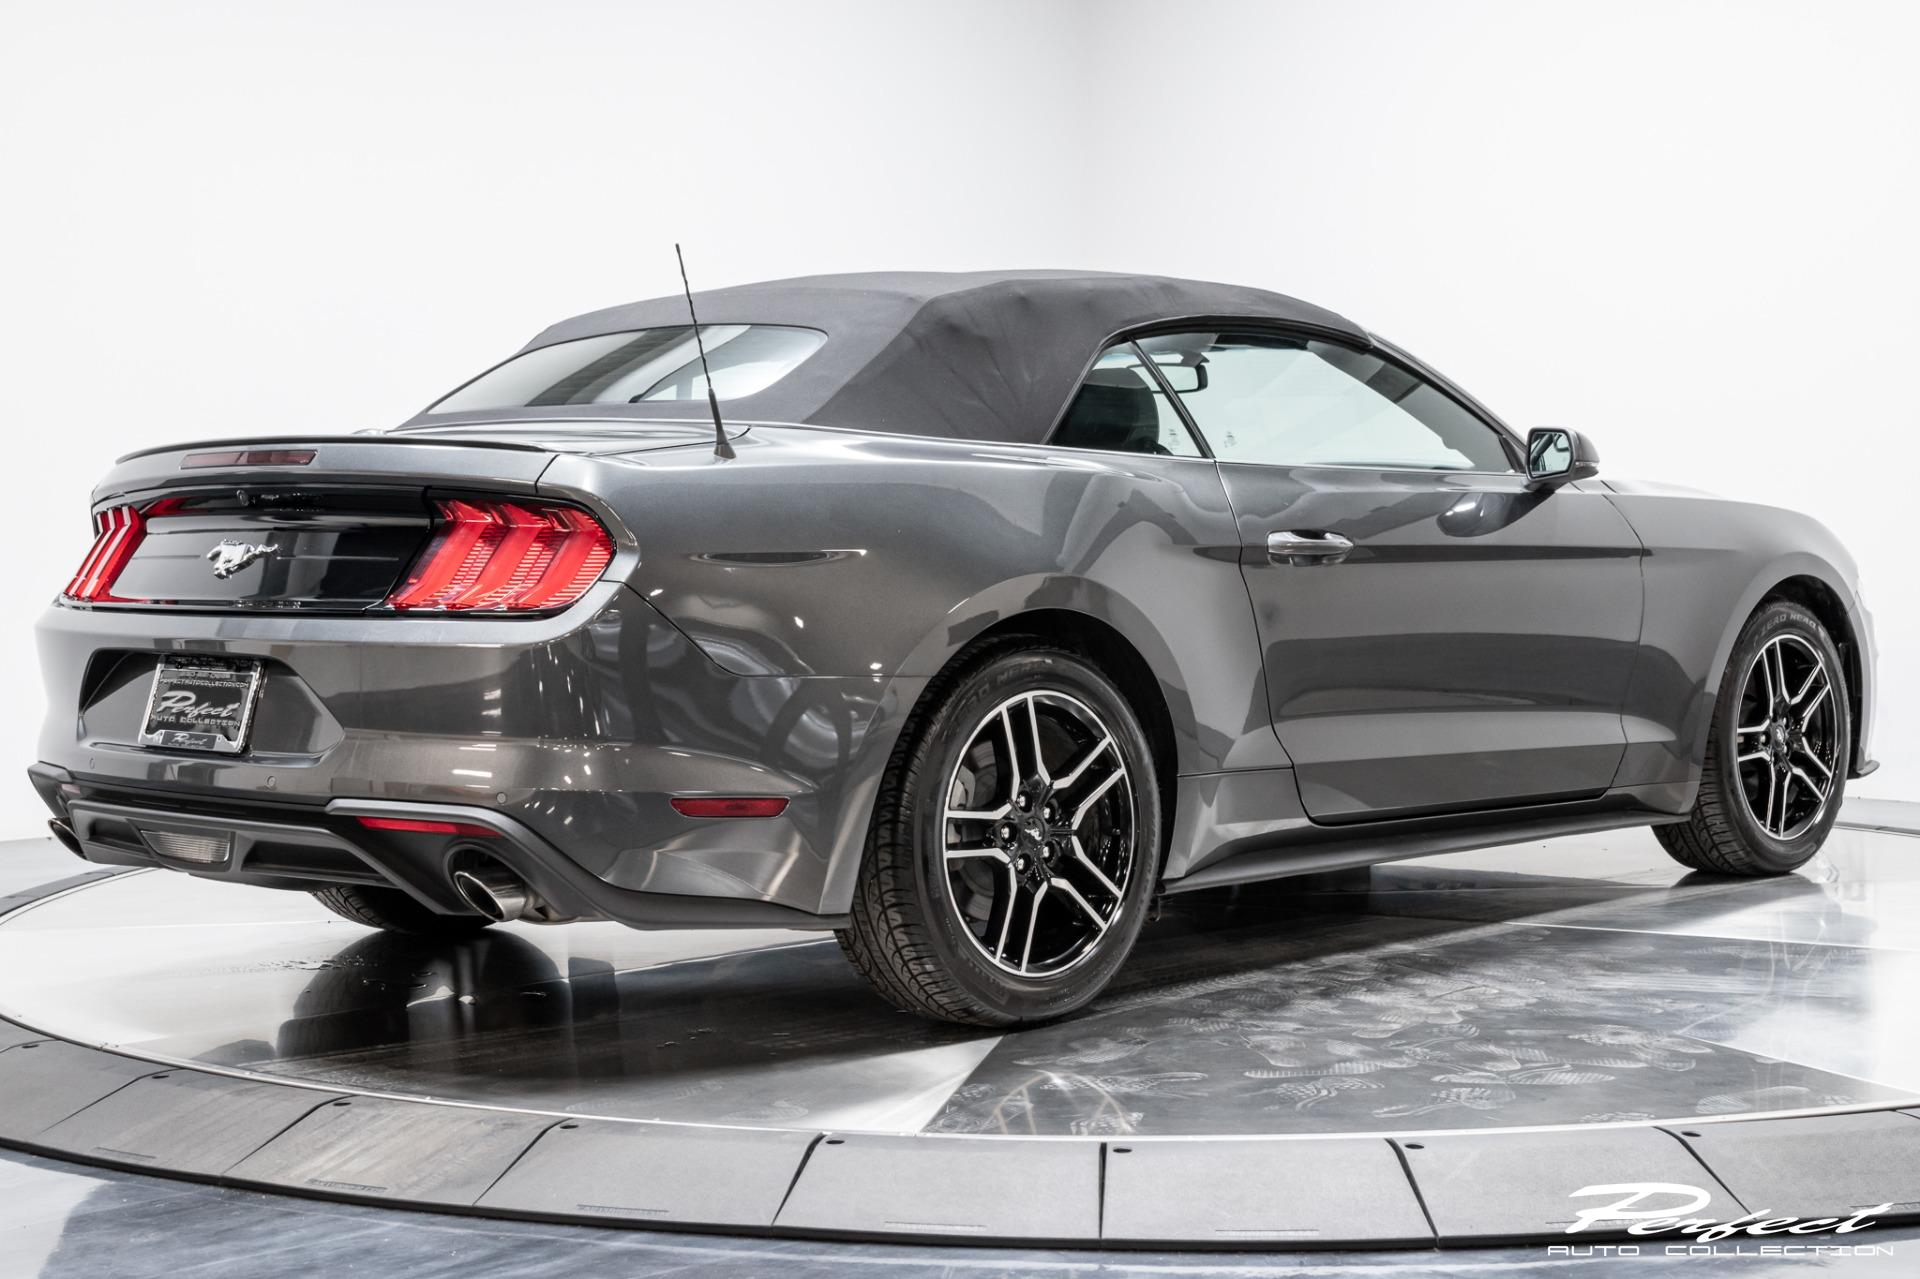 Used 2020 Ford Mustang EcoBoost Premium for sale $27,993 at Perfect Auto Collection in Akron OH 44310 3